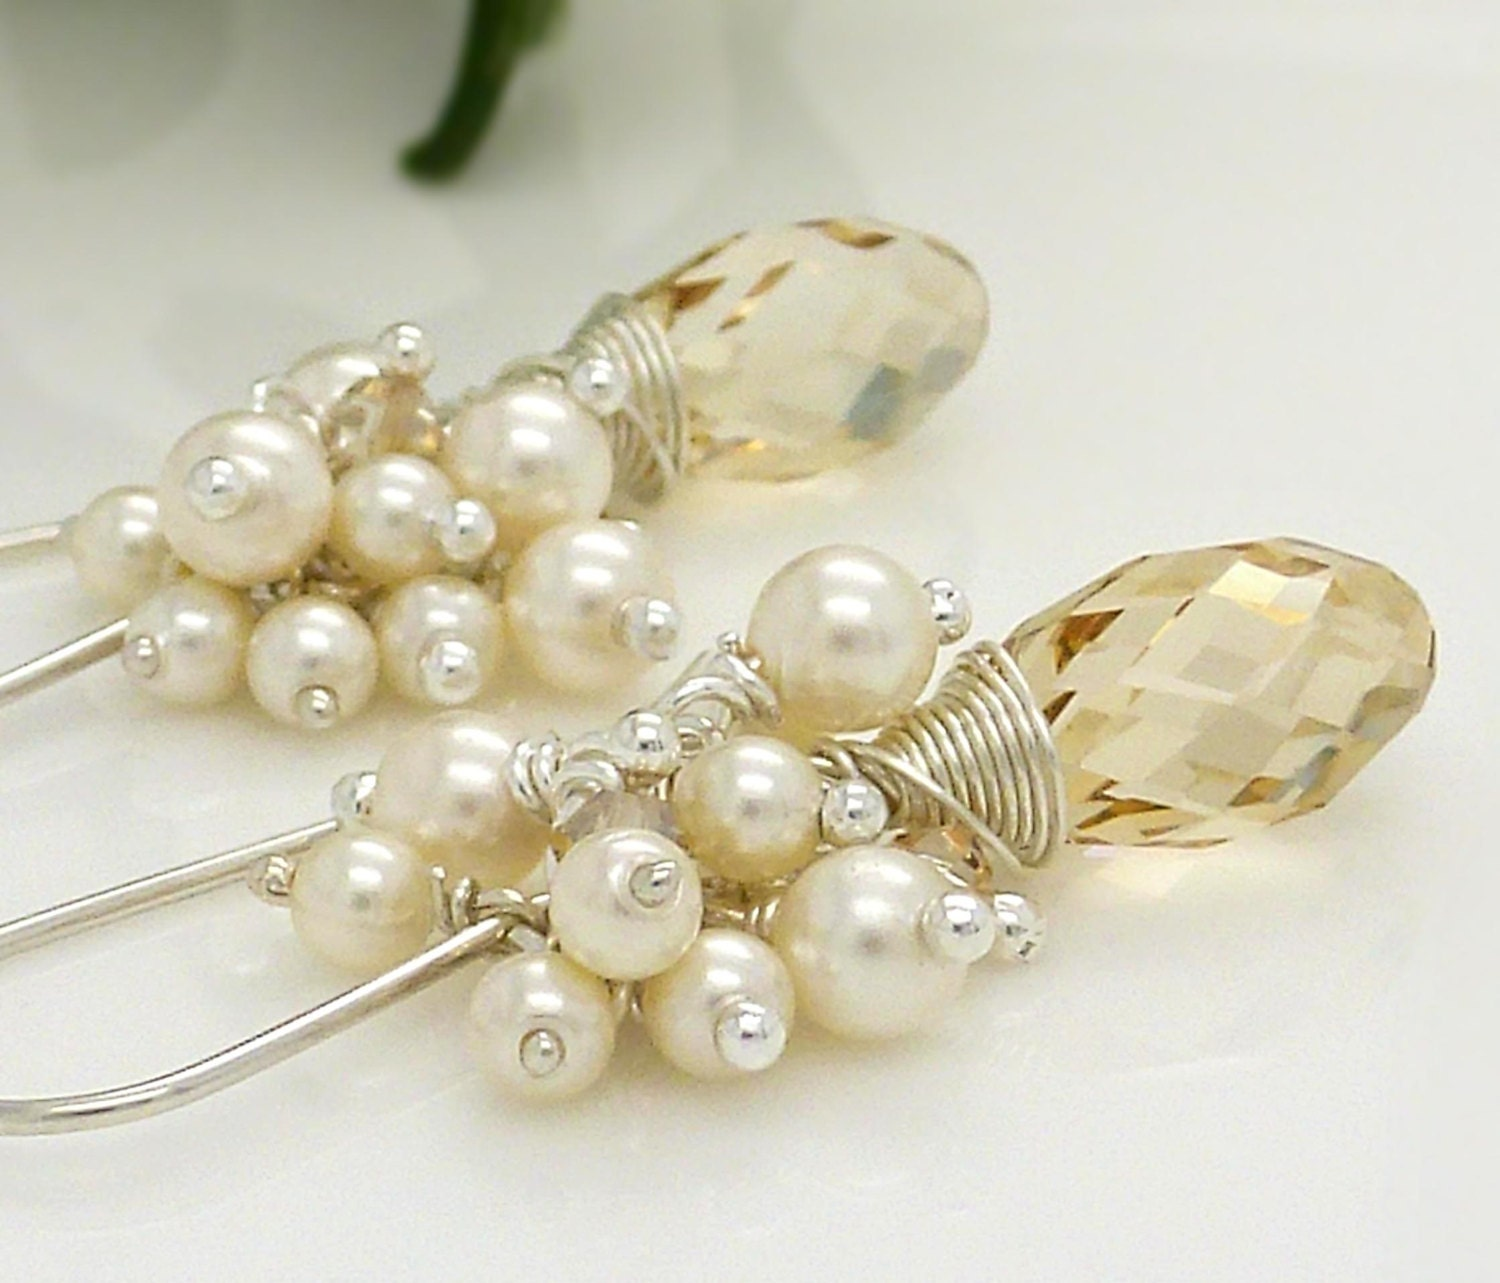 Champagne earrings pearl cluster earrings bridal jewelry for Jewelry for champagne wedding dress